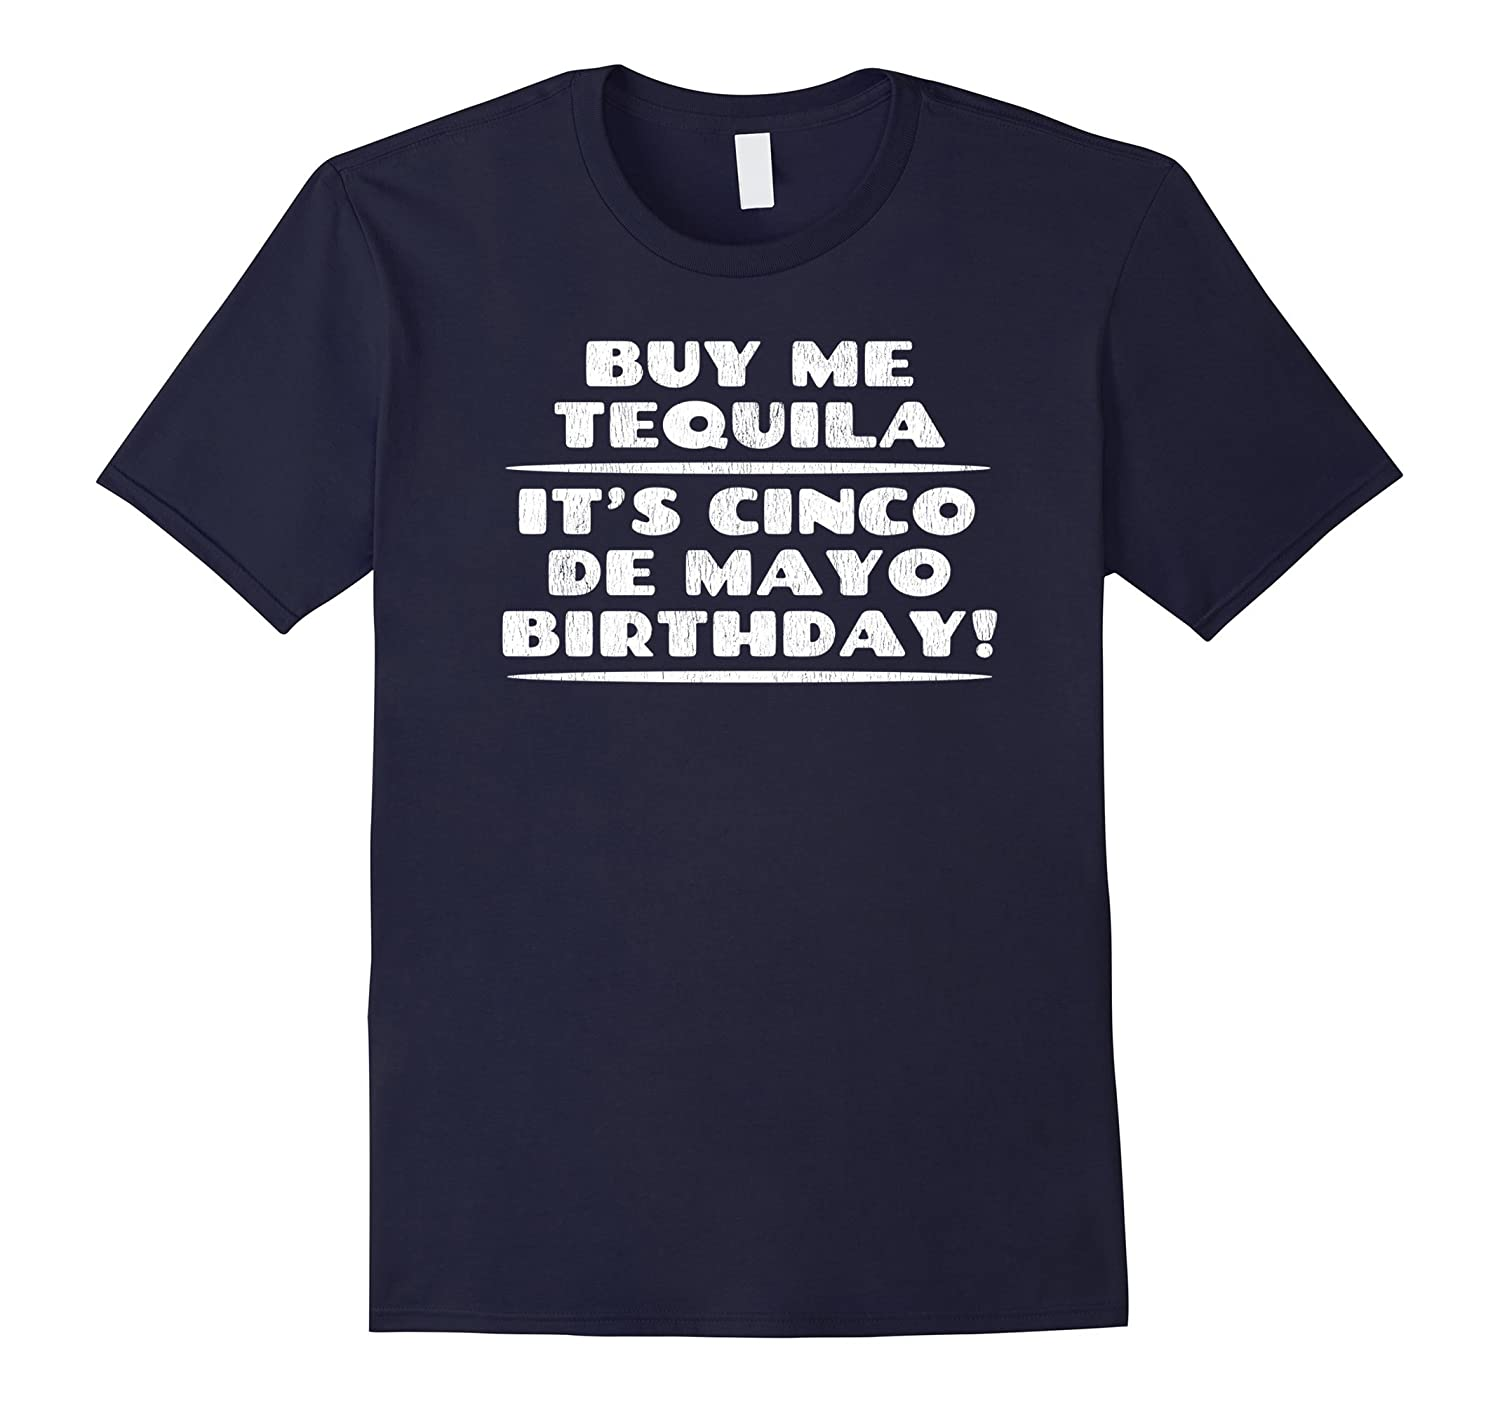 BUY ME TEQUILA! IT'S CINCO DE MAYO BIRTHDAY T-SHIRT-TH